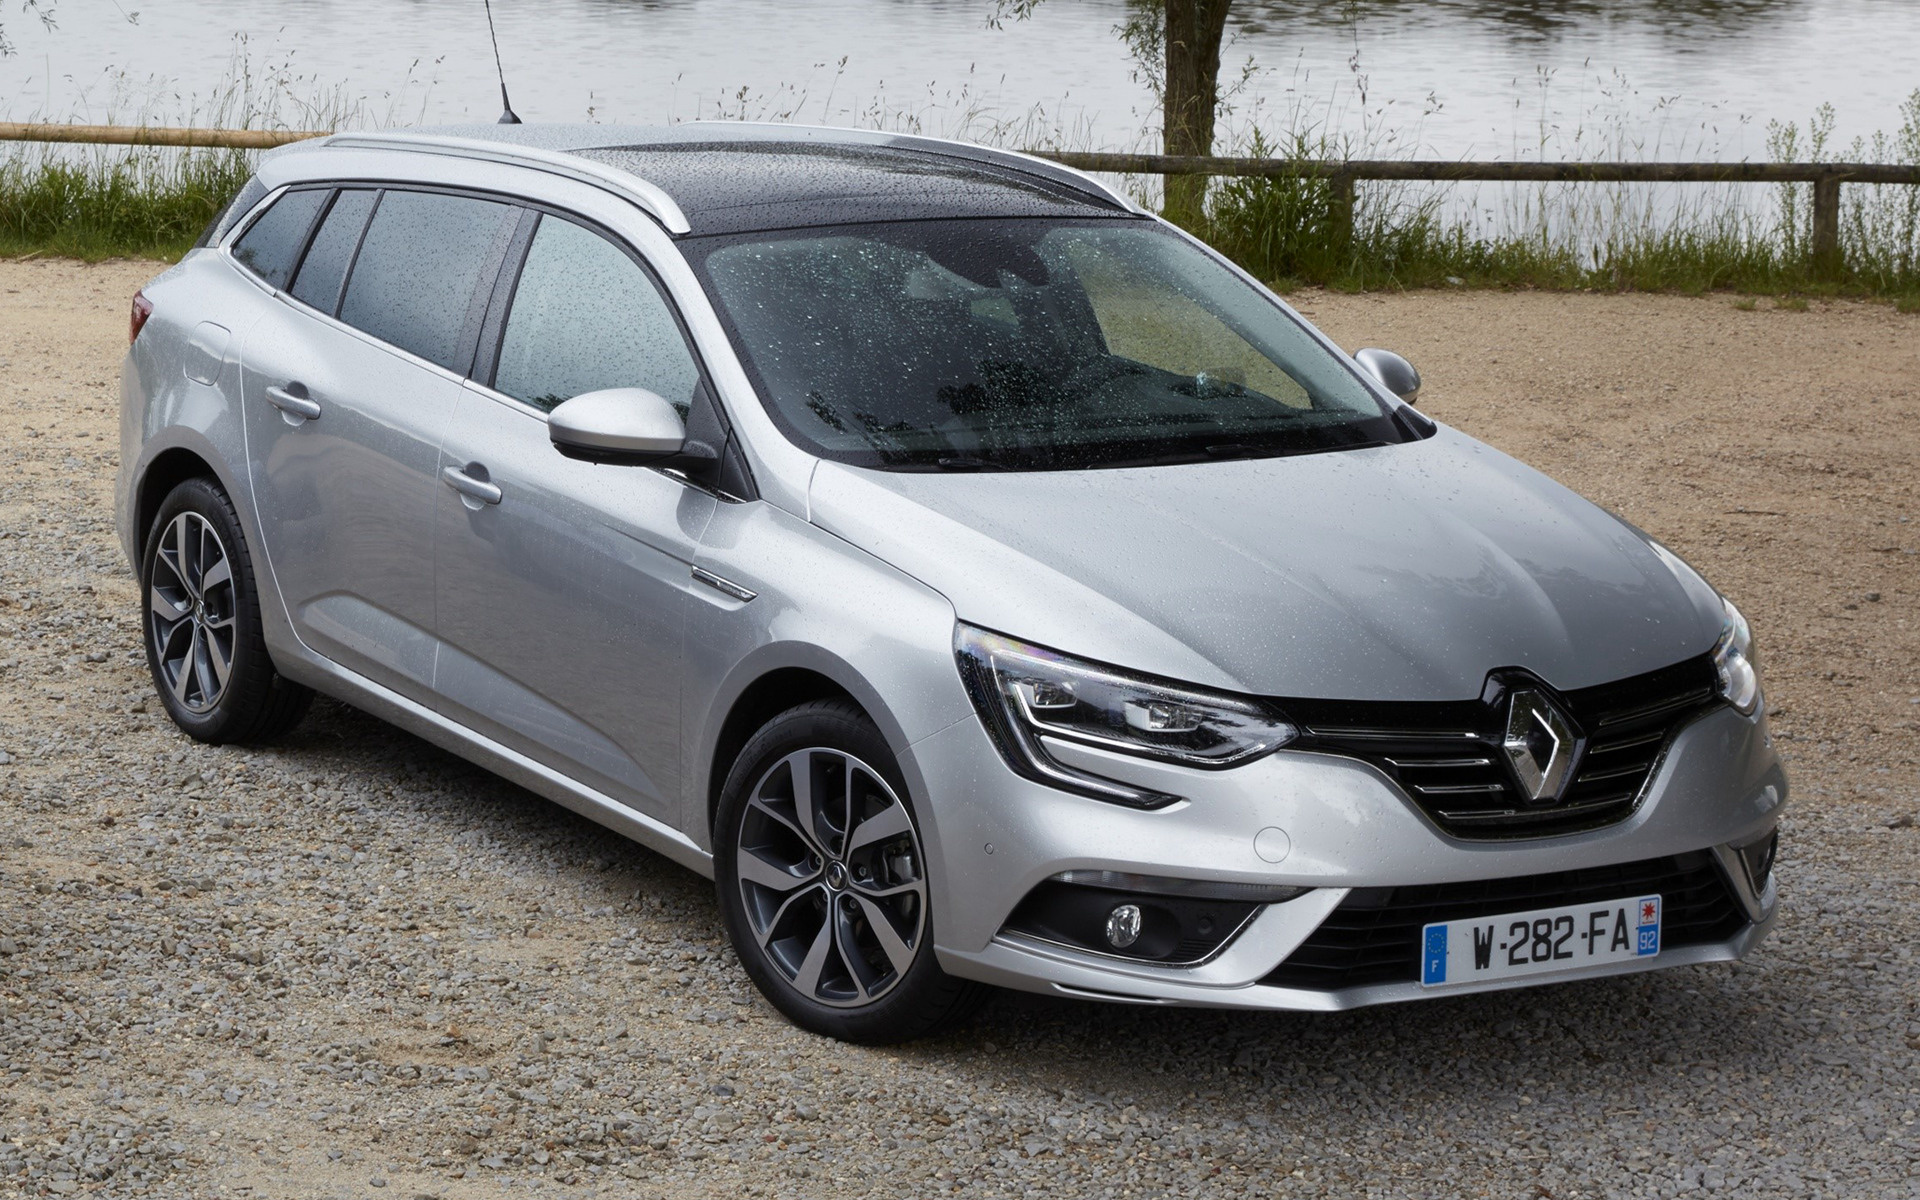 2016 Renault Megane Estate Wallpapers And Hd Images